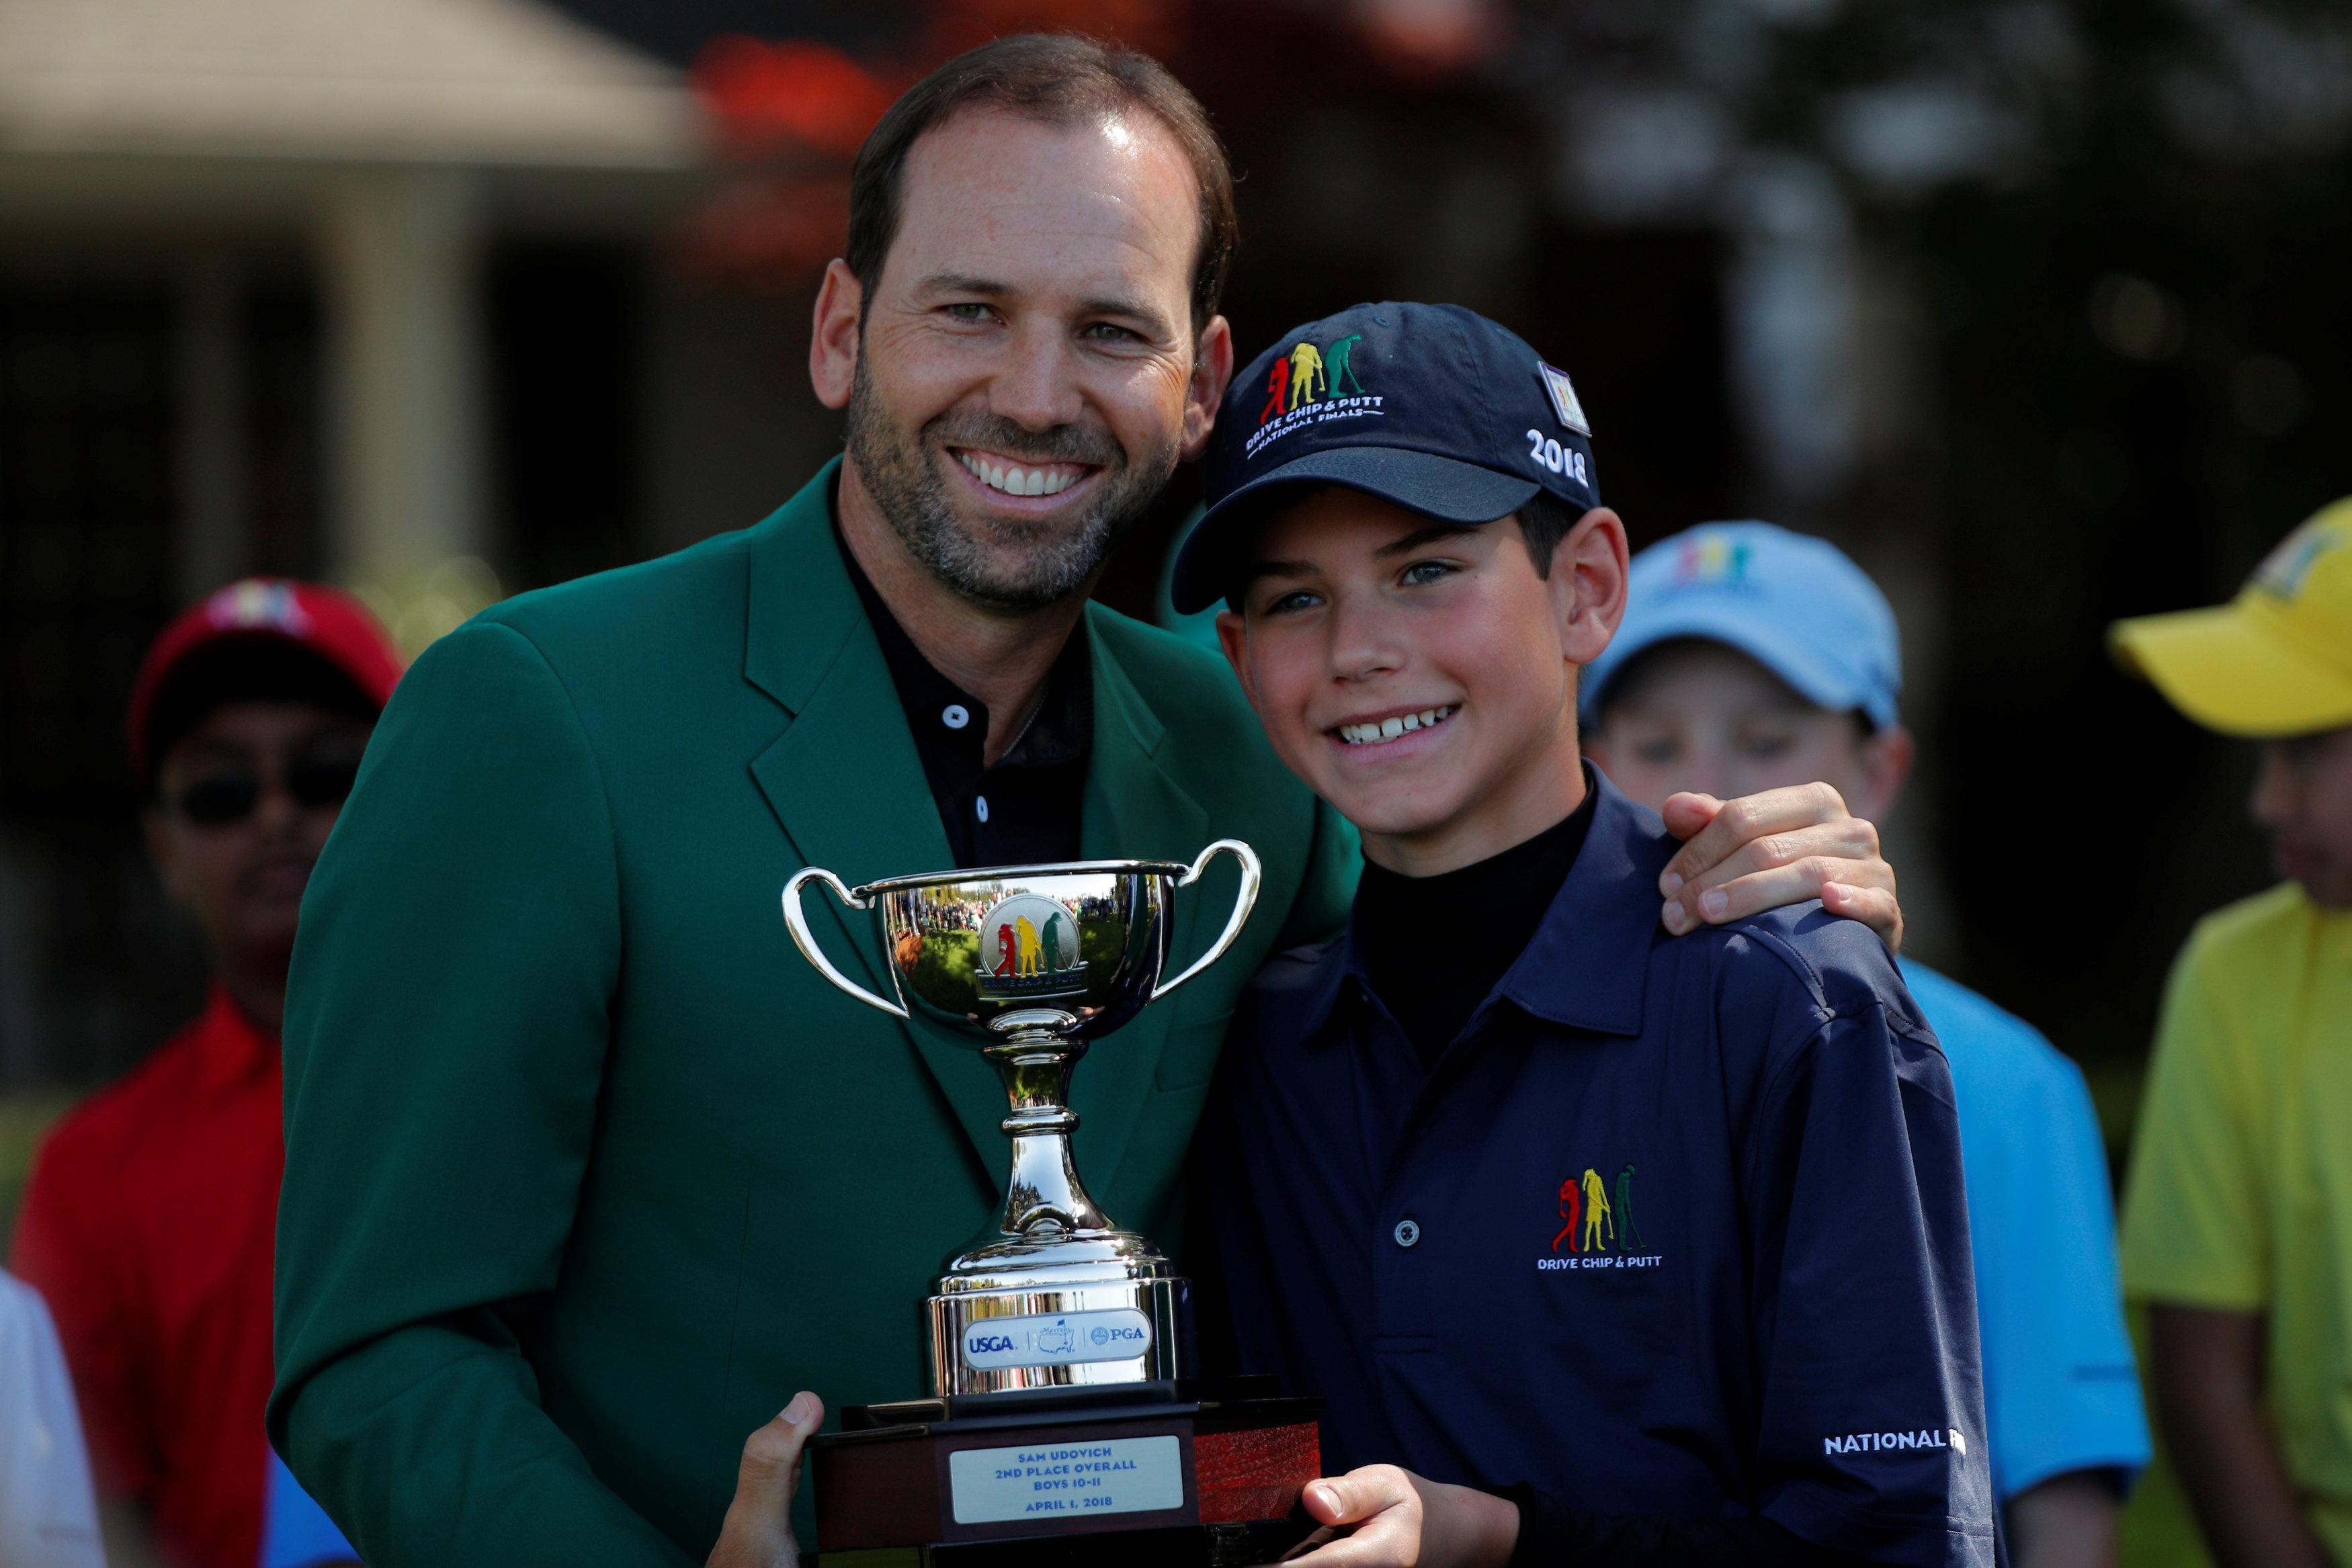 Sergio Garcia won his first ever major at The Masters 2017